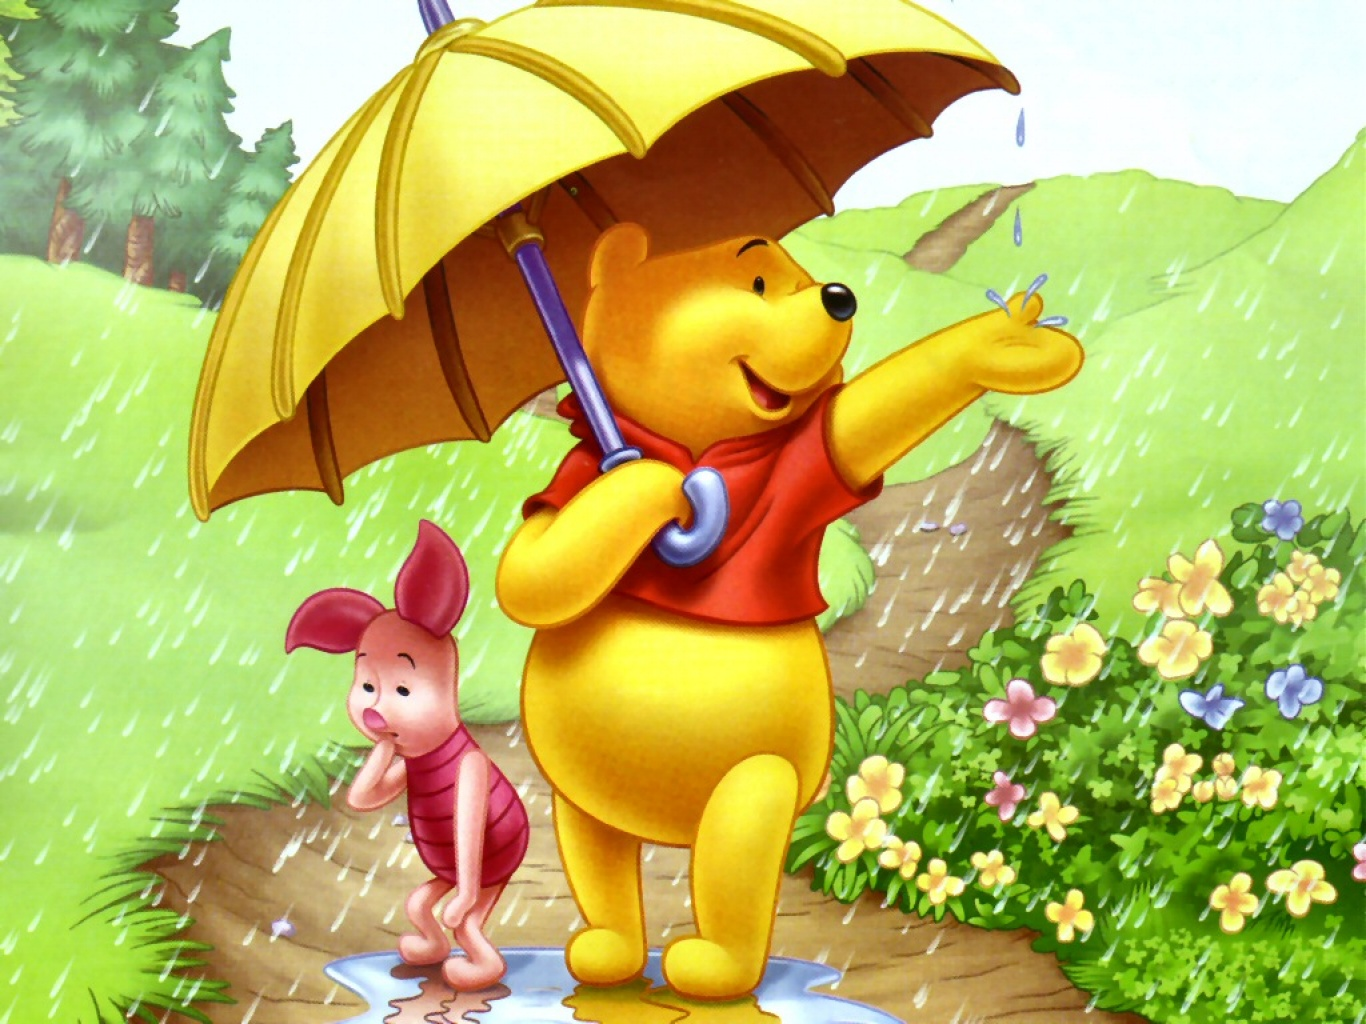 Magic Colour Pencil Wallpaper Free Download Winnie The Pooh With